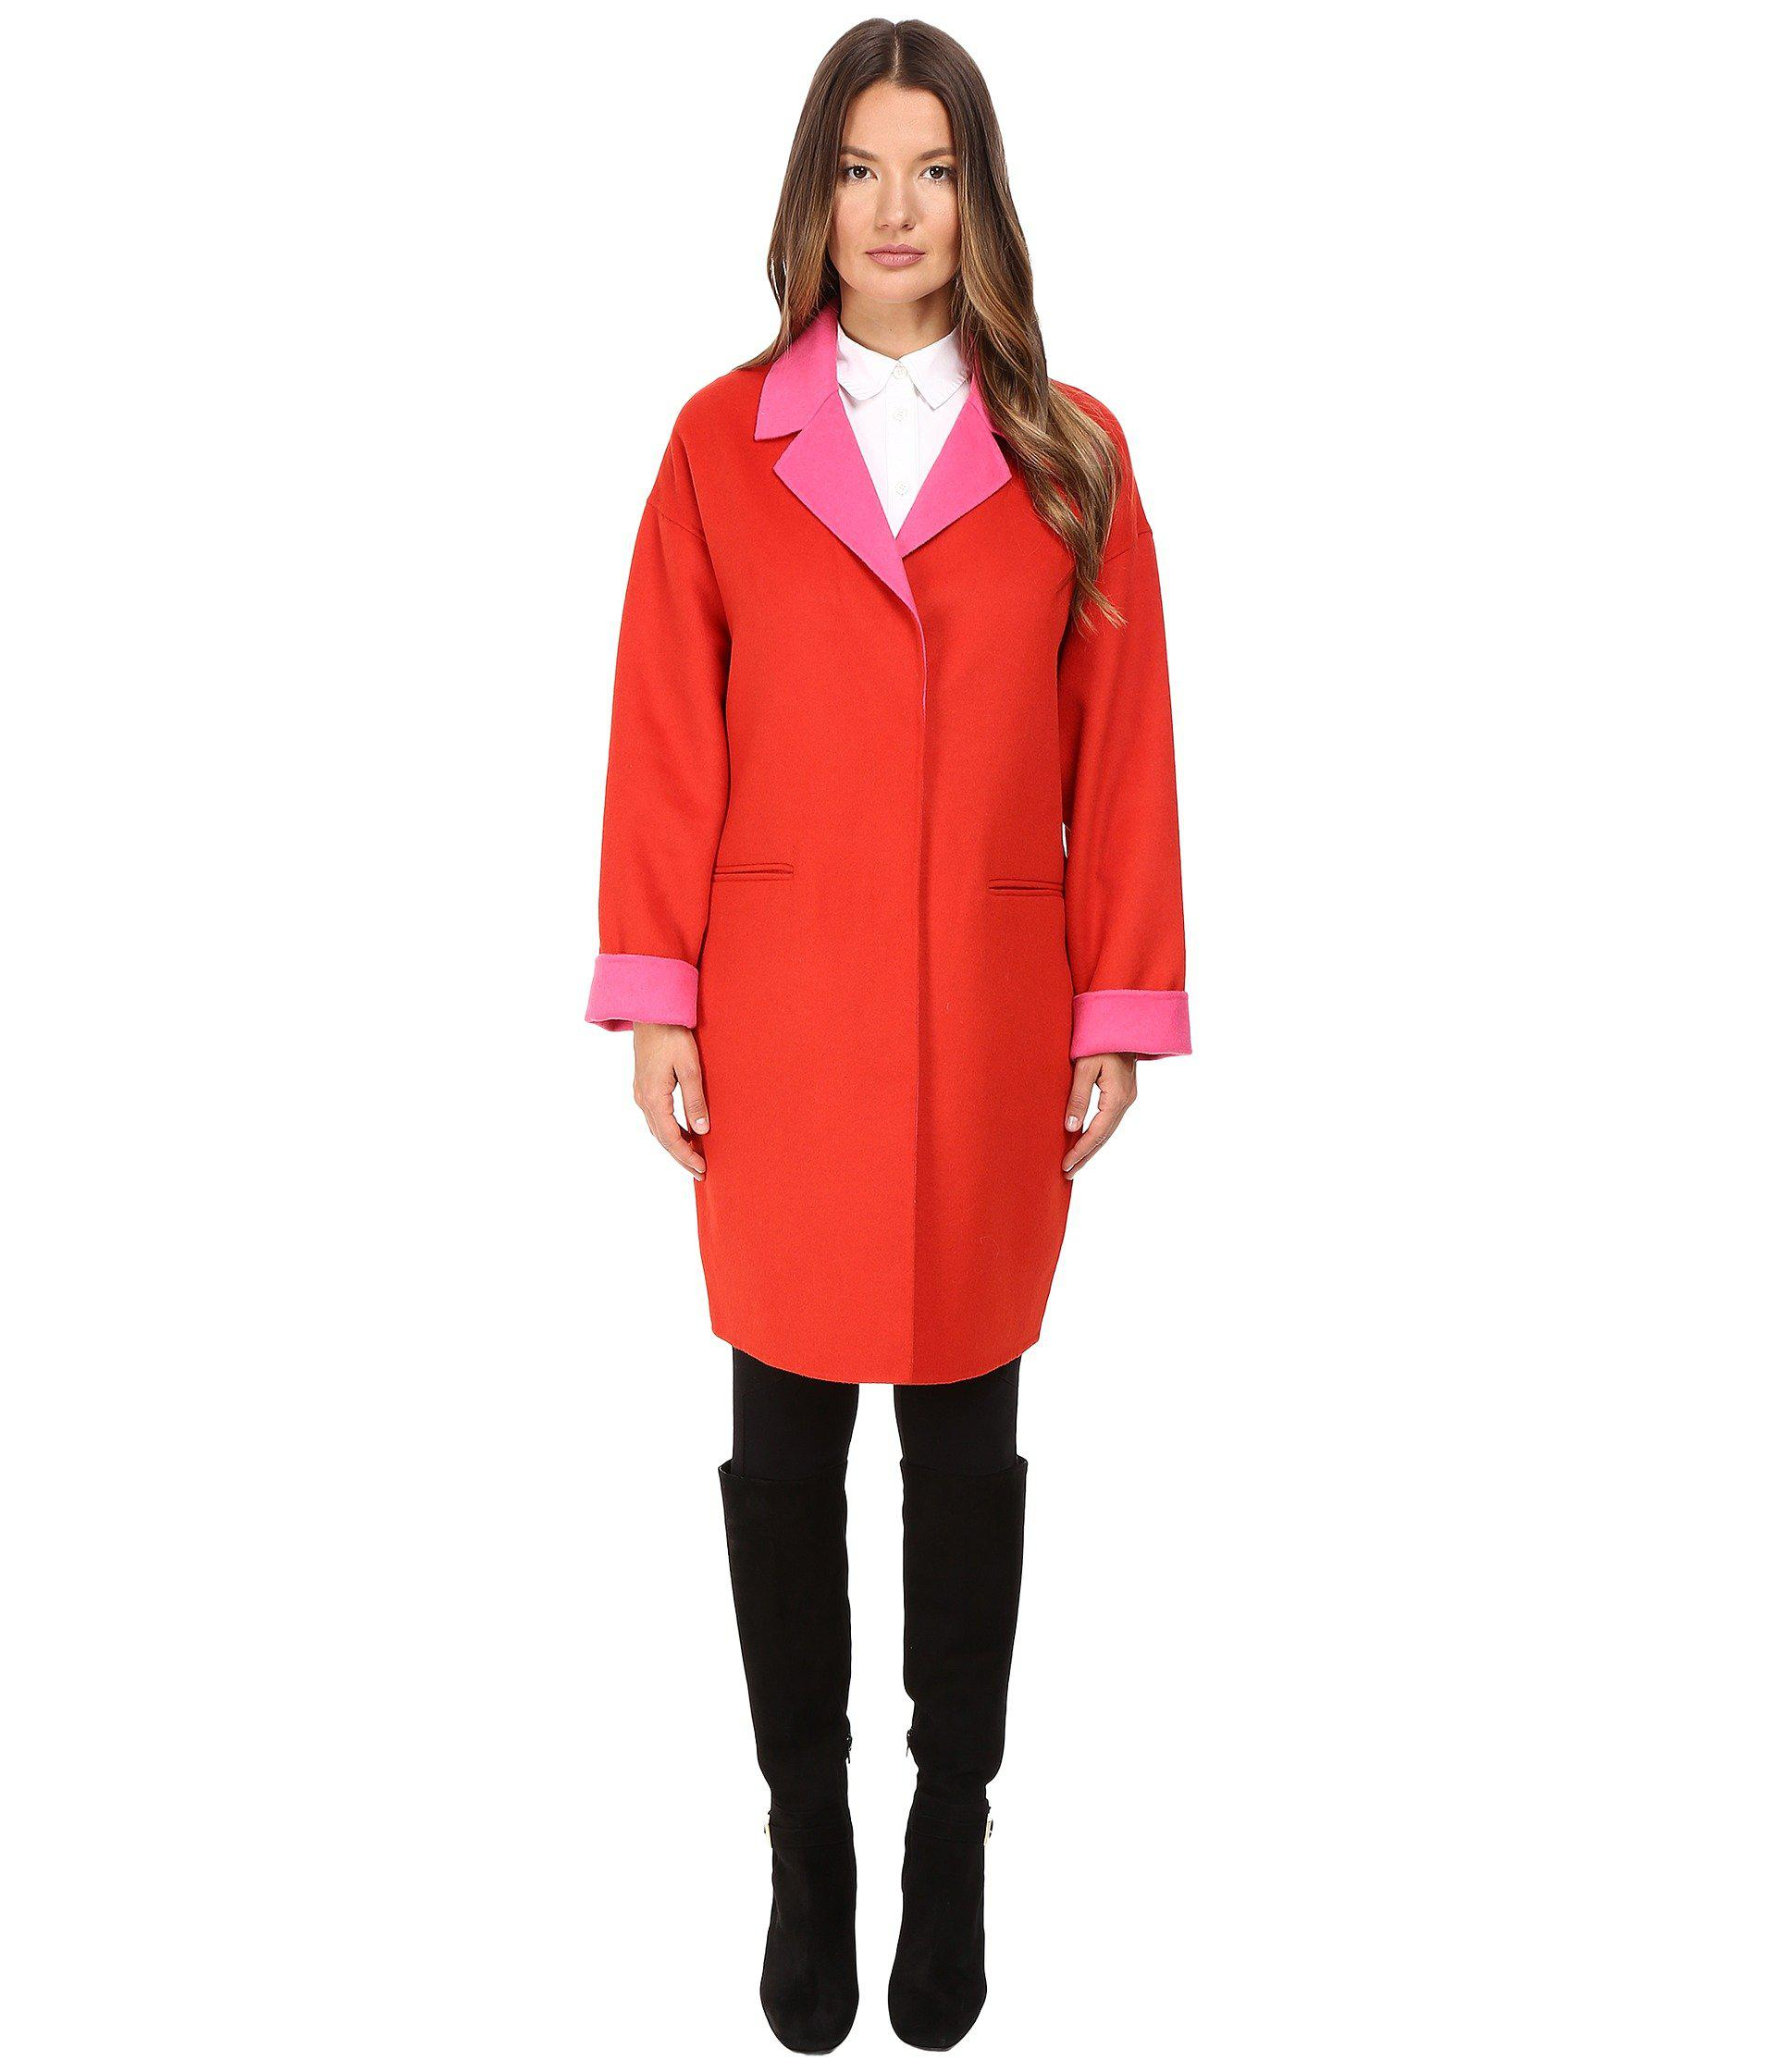 Lyst - Kate Spade Single Breasted Hidden Button Peacoat 36